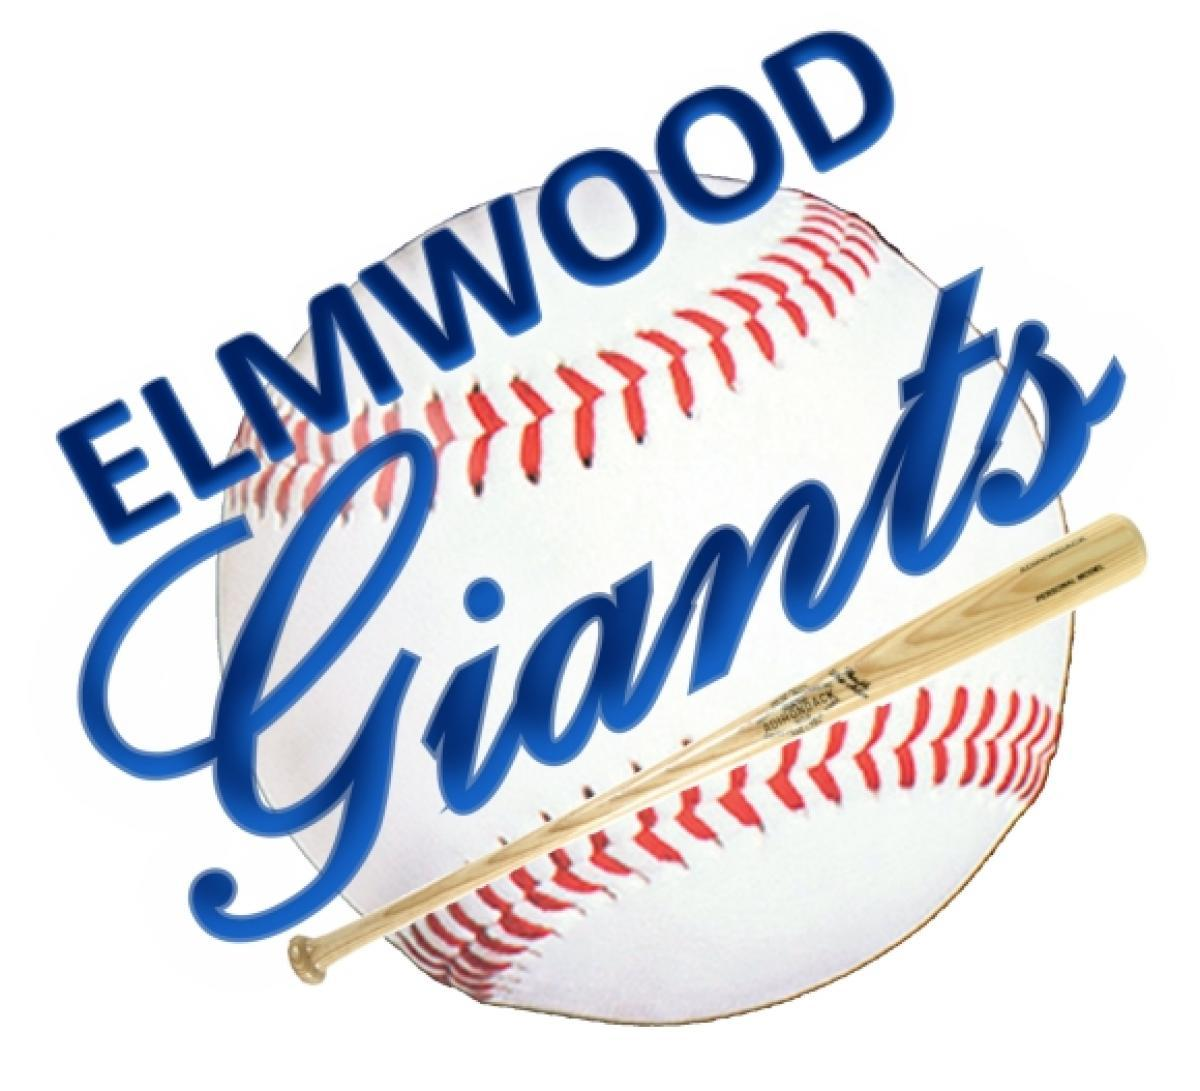 The 12th Annual Elmwood Giants Baseball Club Fundraiser Dinner